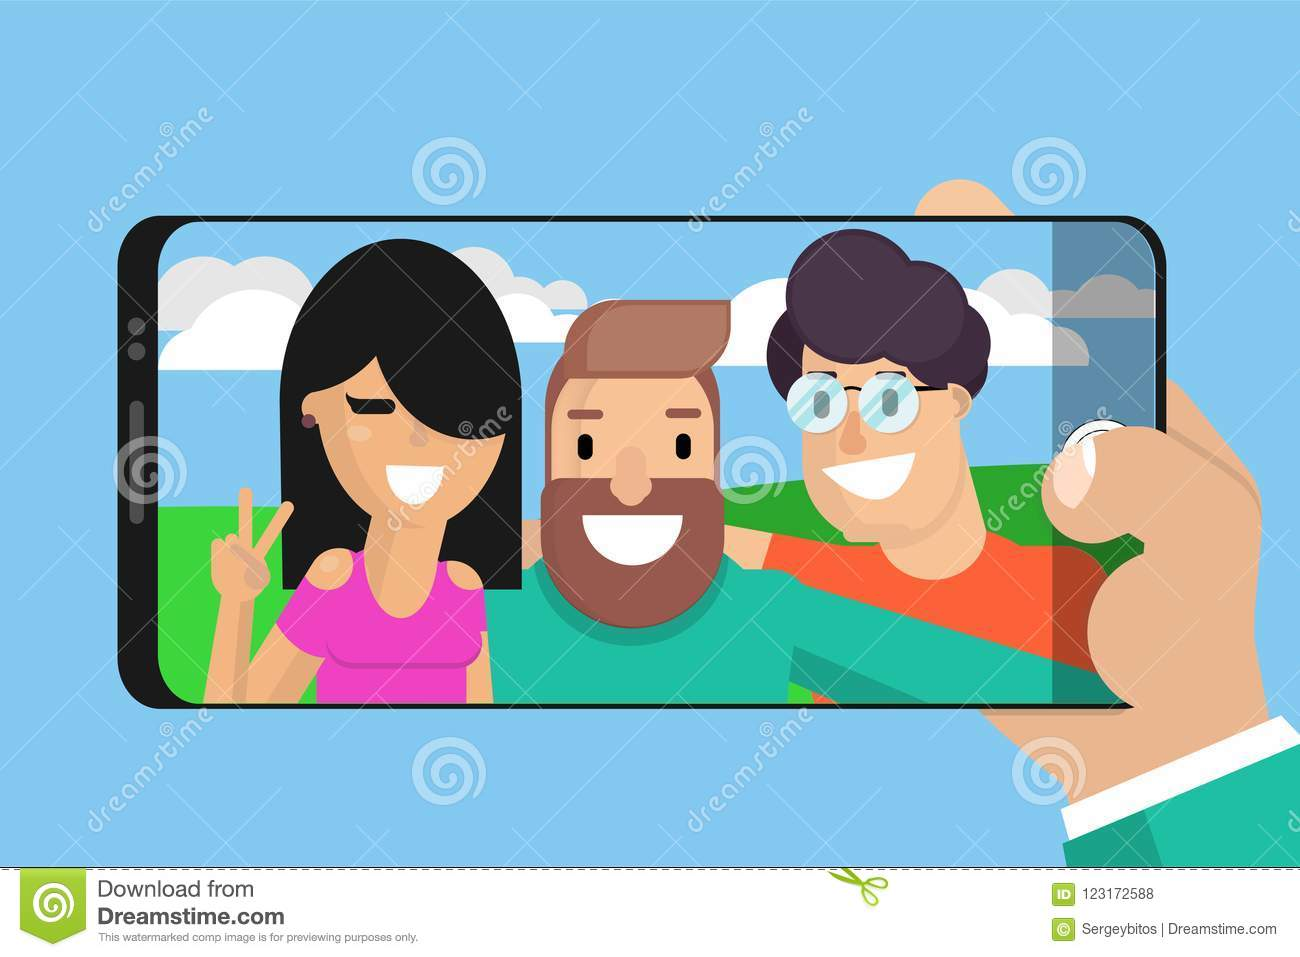 Celebrating Friendship Day Concept Stock Vector Illustration Of Happy Friendly 123172588